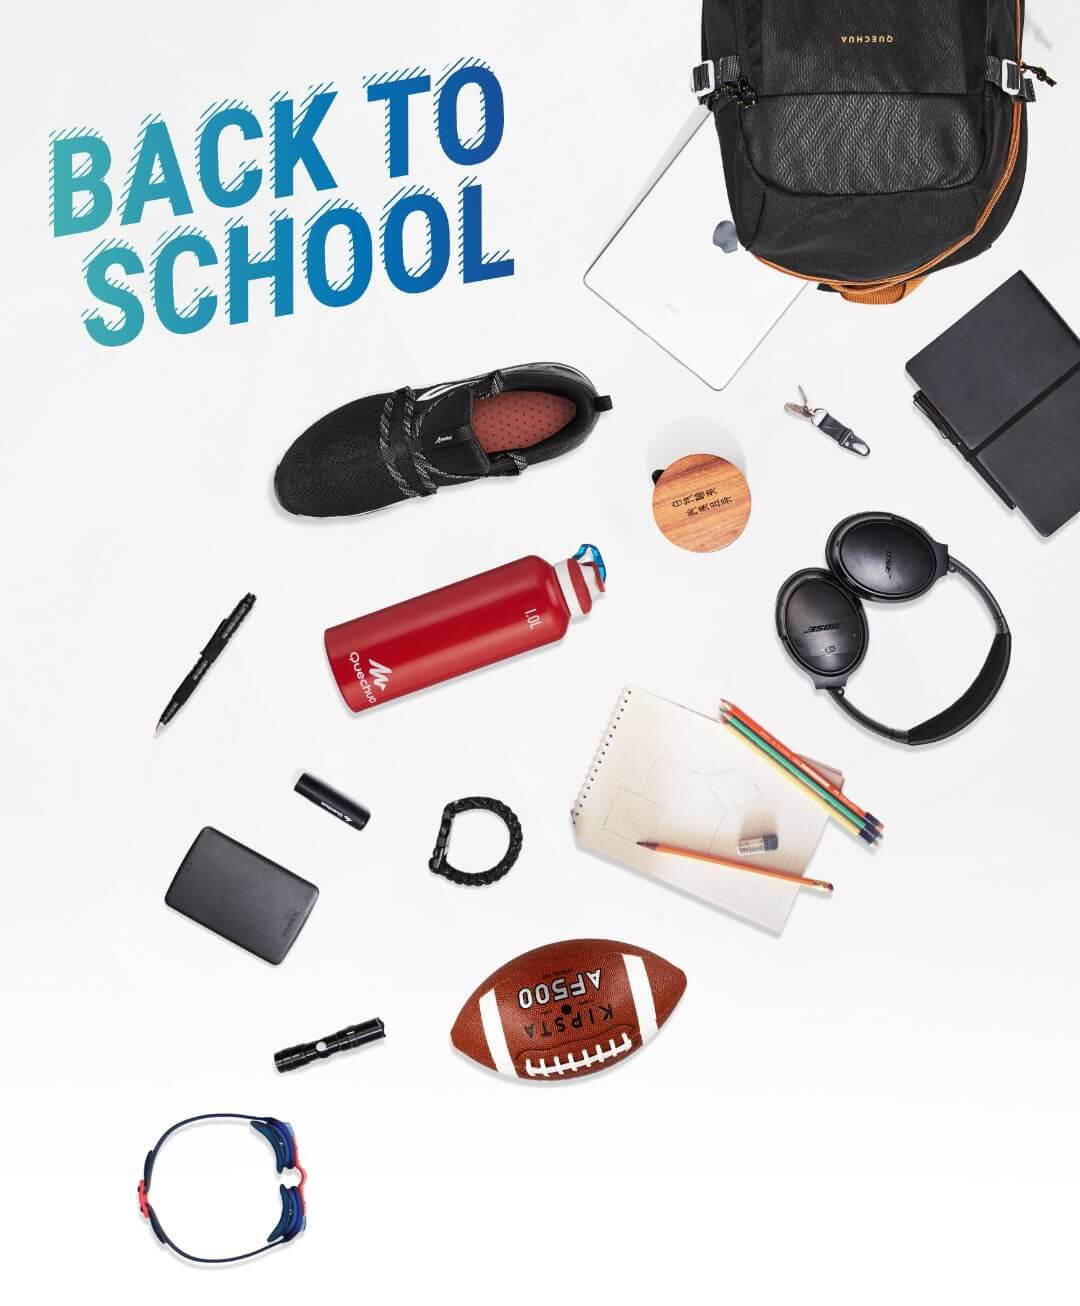 Back to school cu Decathlon